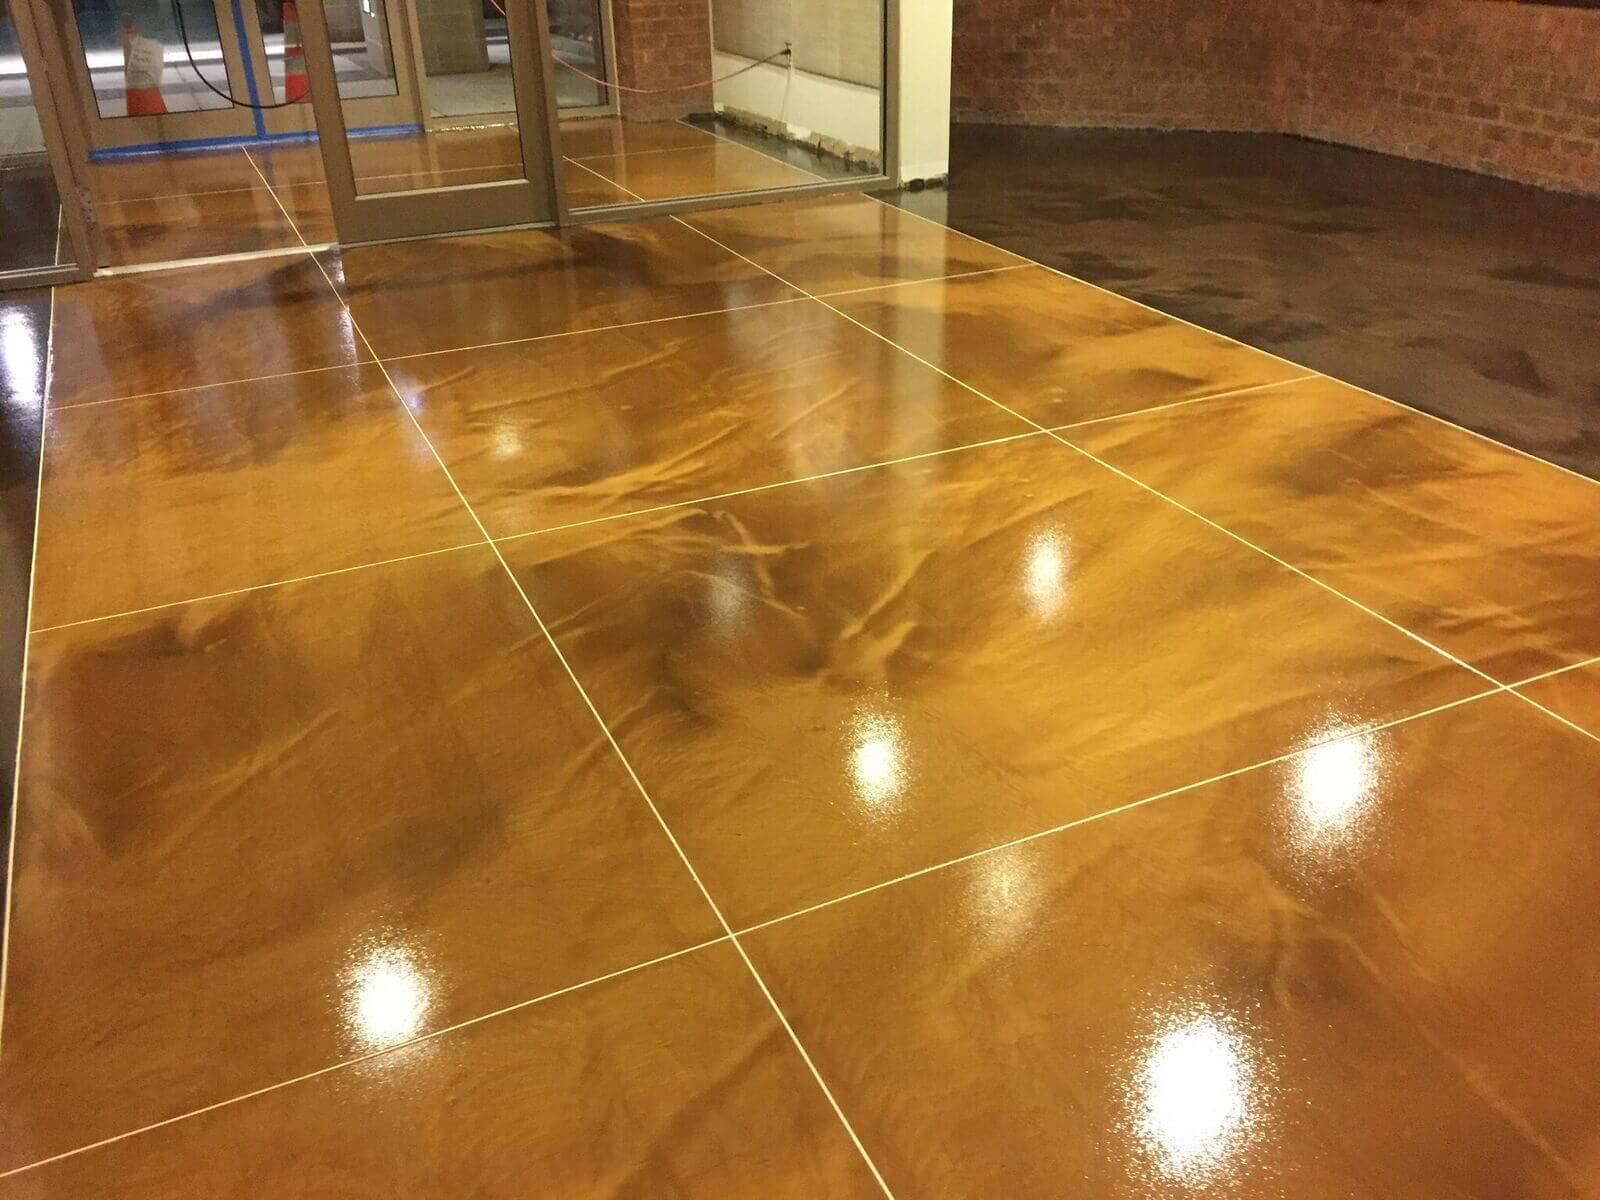 Epoxy Flooring Roanoke Expert Concrete Floor Contractor